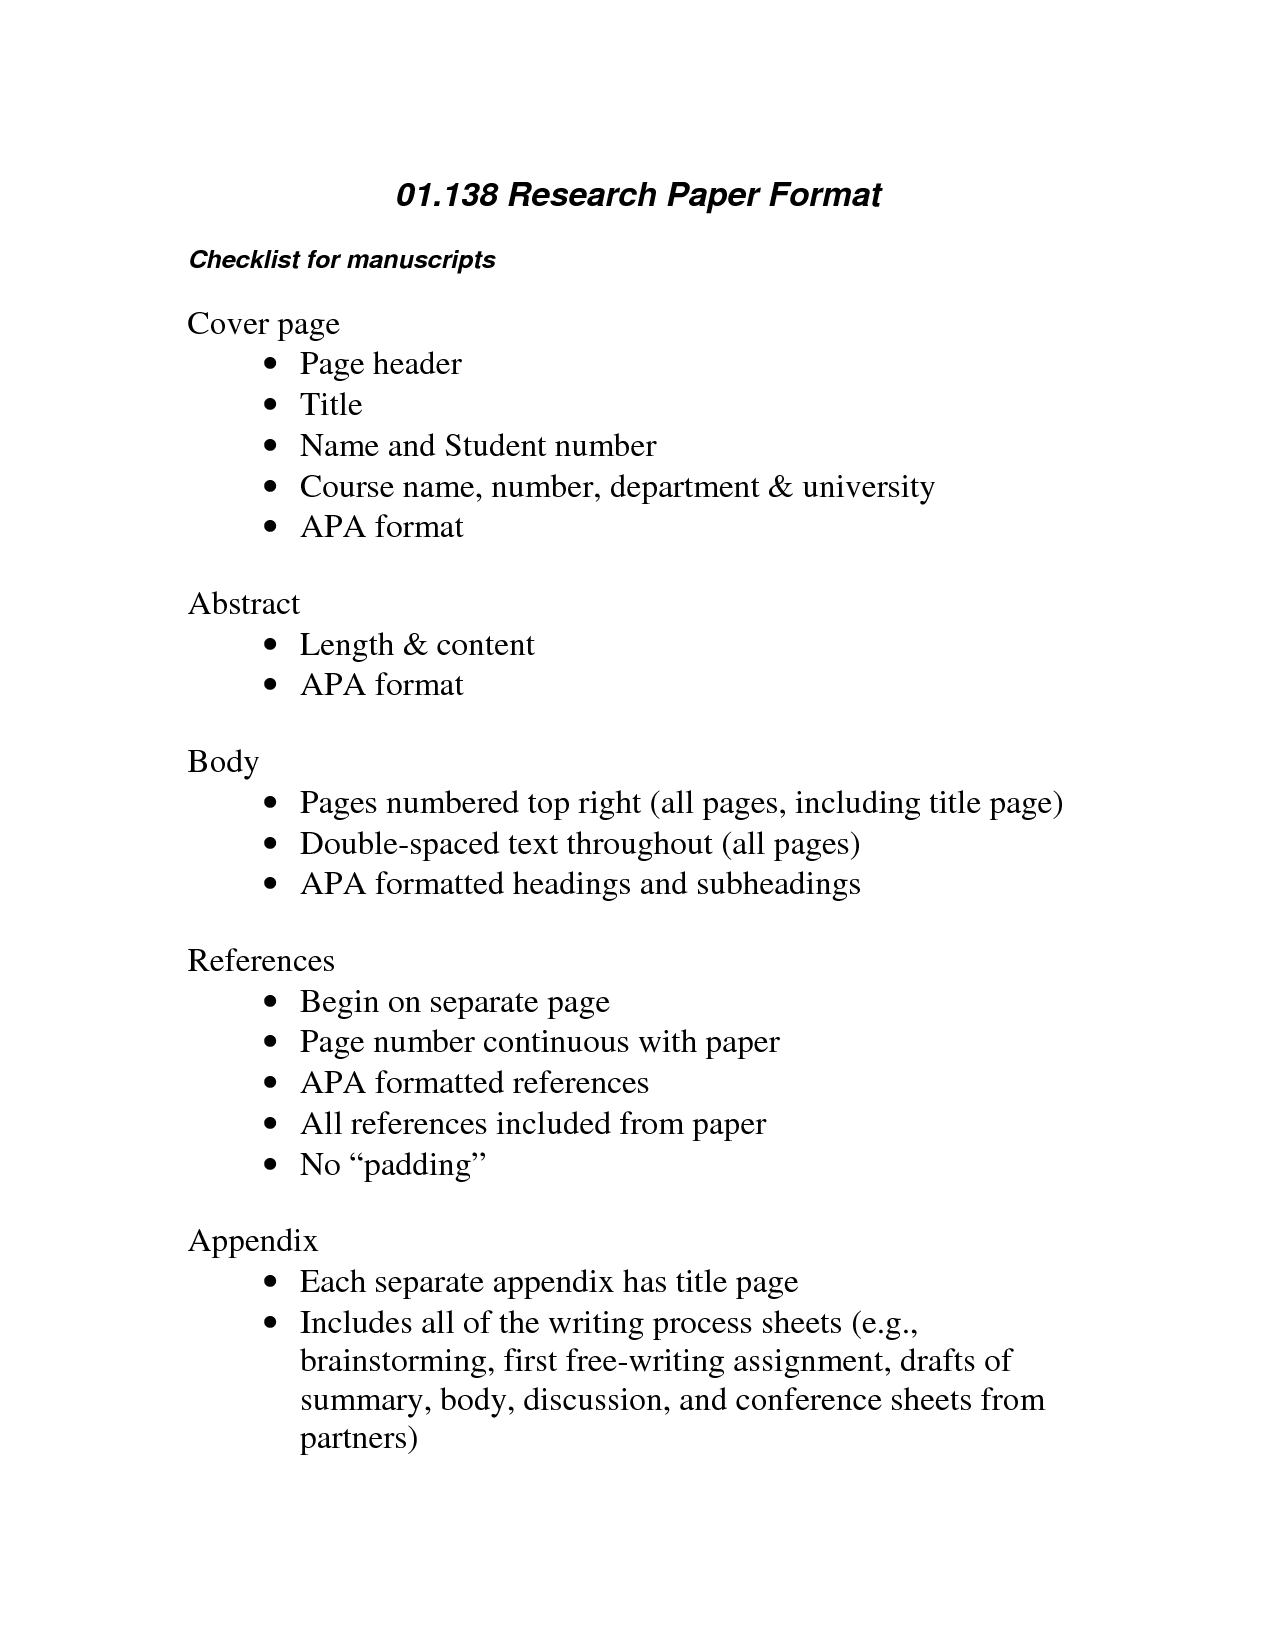 003 Apa Writing Research Paper Surprising Title Page Example Format 2015 Outline Sample Full